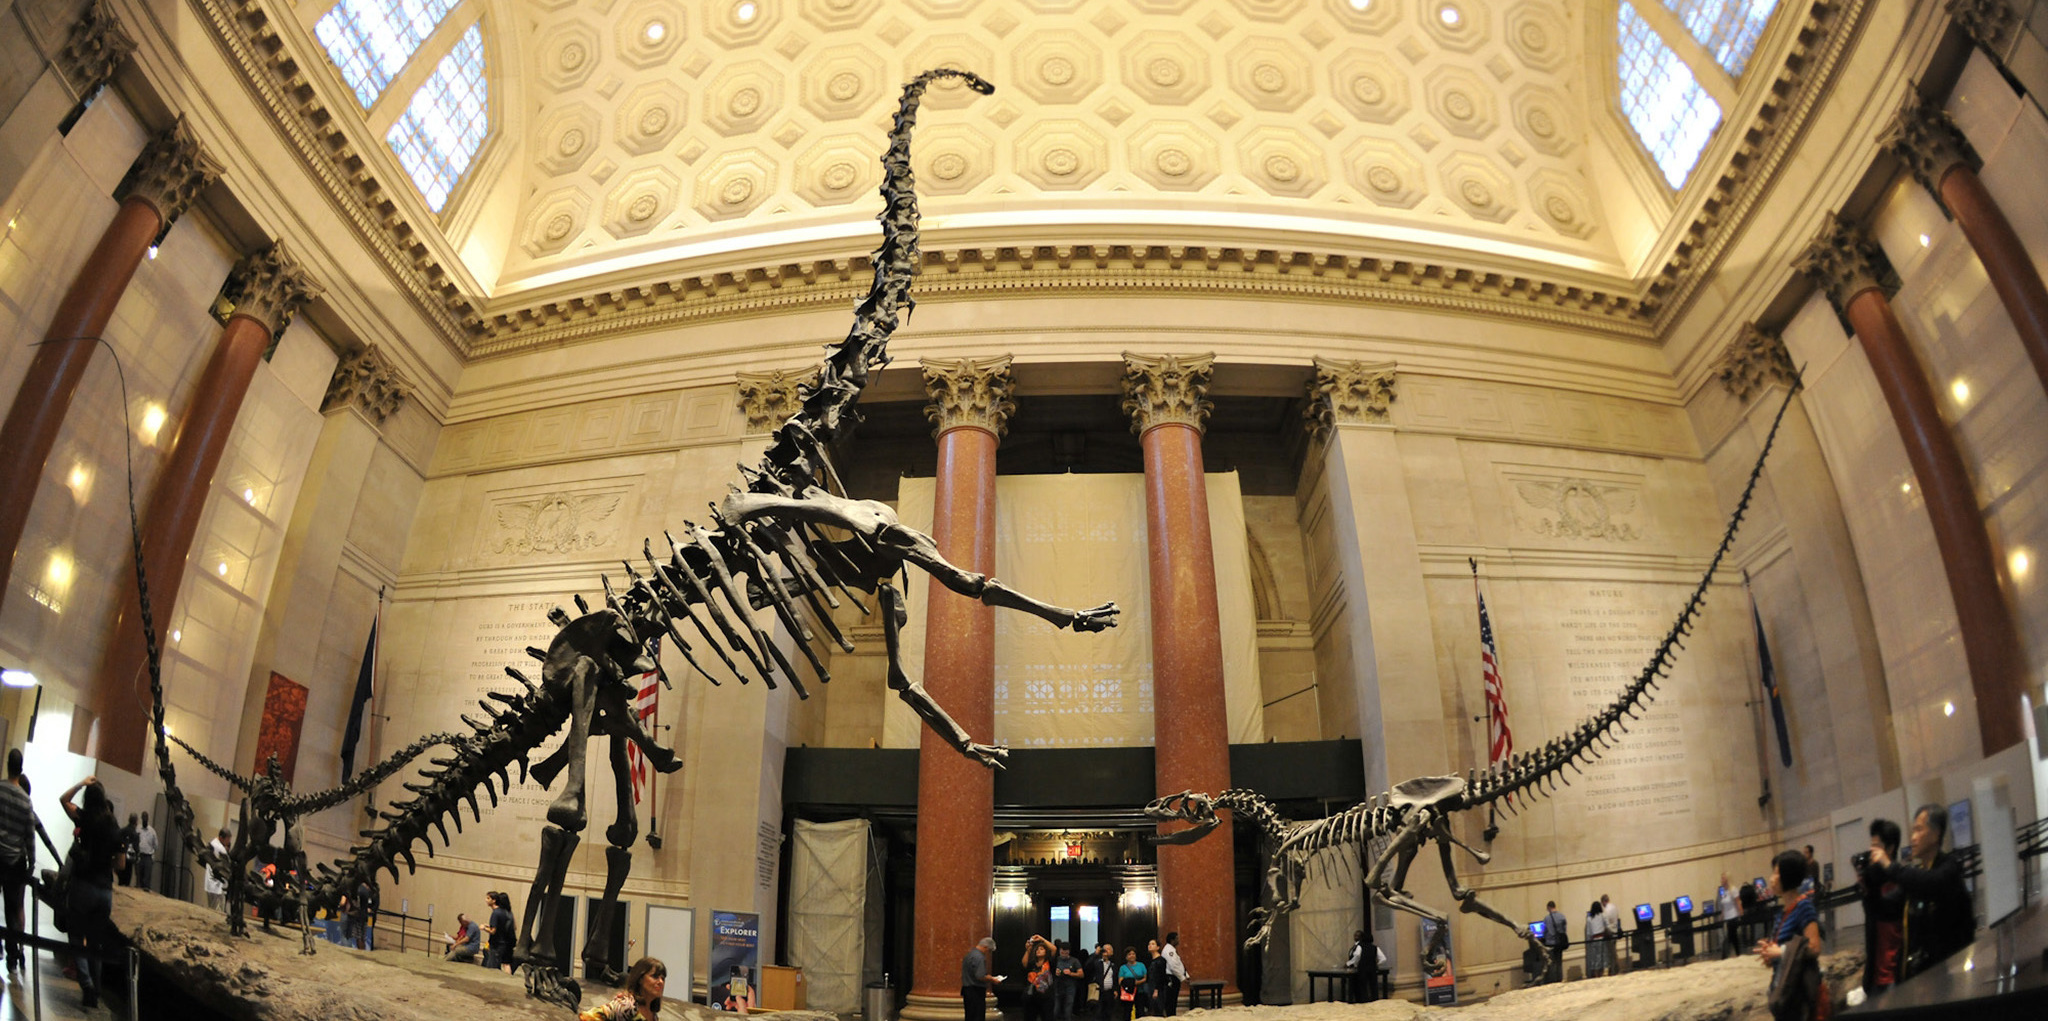 American Museum of Natural History's Dinosaur Halls